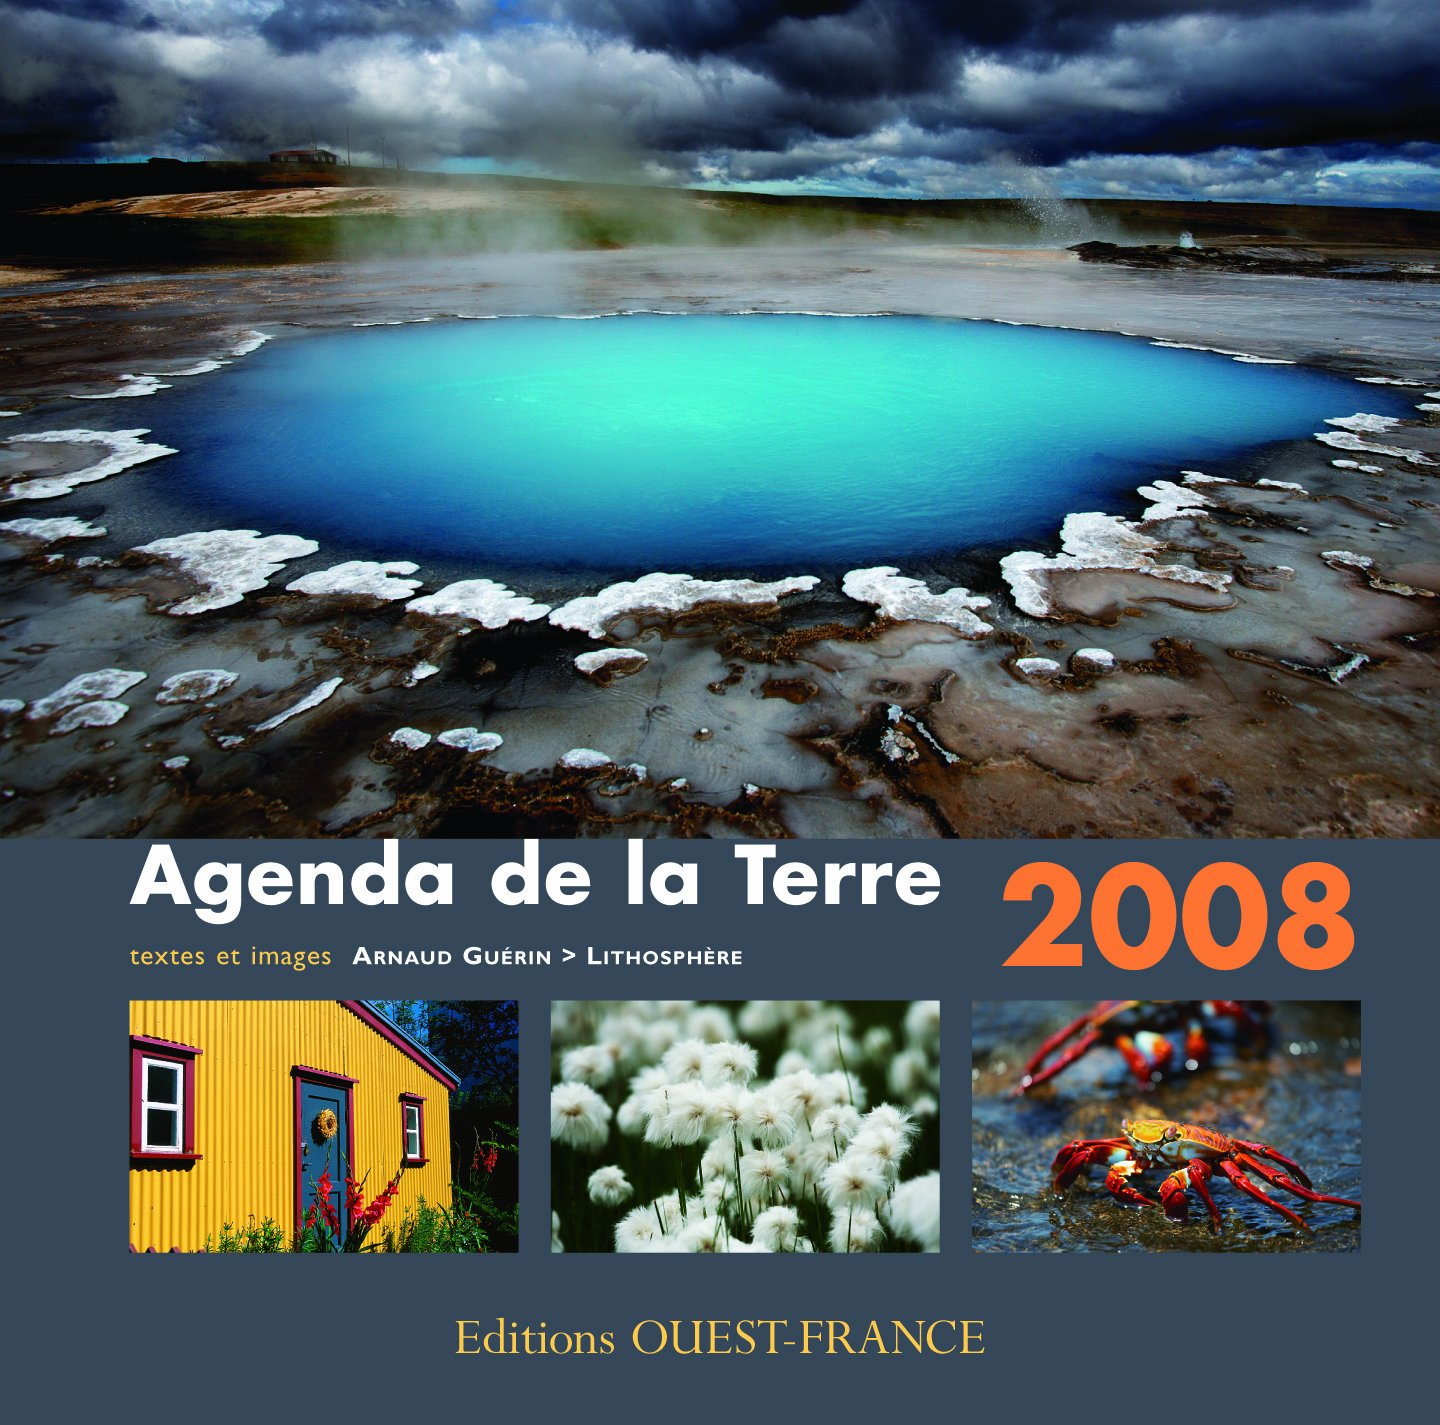 Agenda de la Terre 2008: 9782737342196: Amazon.com: Books